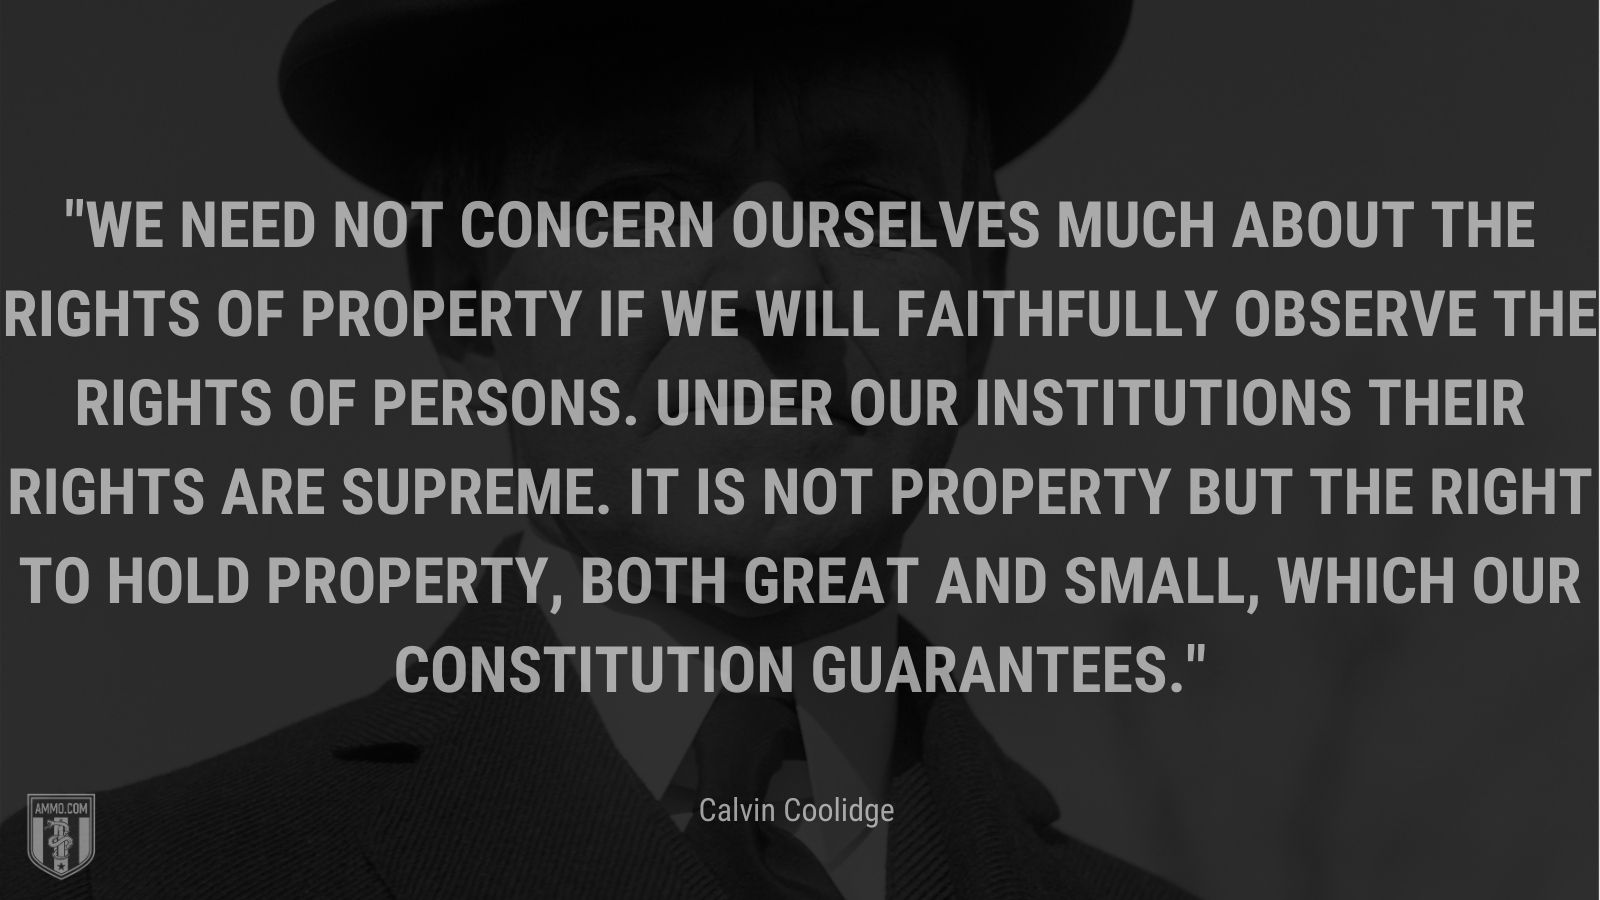 """""""We need not concern ourselves much about the rights of property if we will faithfully observe the rights of persons. Under our institutions their rights are supreme. It is not property but the right to hold property, both great and small, which our Constitution guarantees."""" - Calvin Coolidge"""